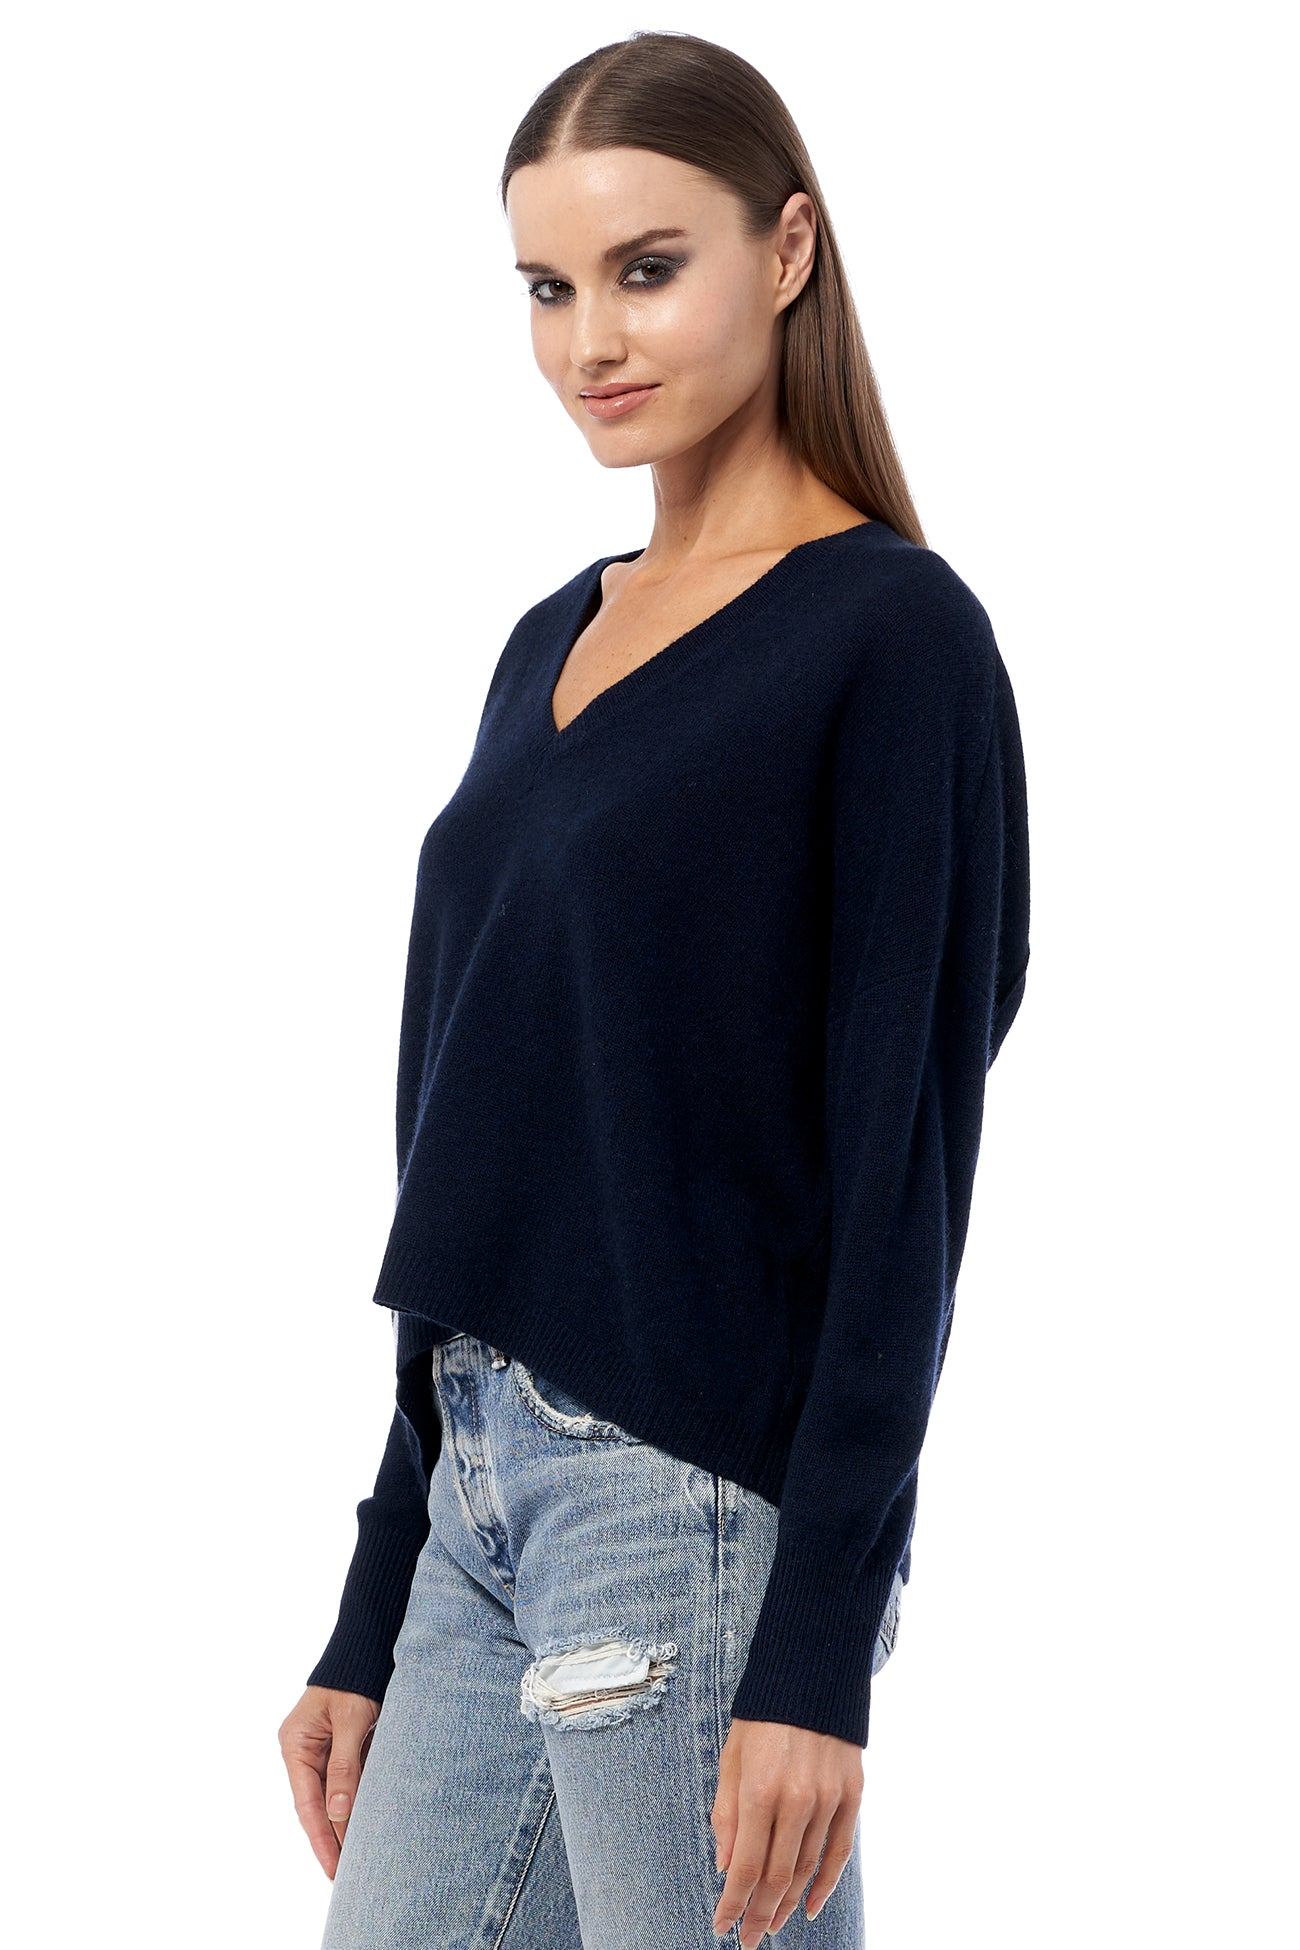 SKULL CASHMERE ALLOY RELAXED MODERN V-NECK CASHMERE SWEATER